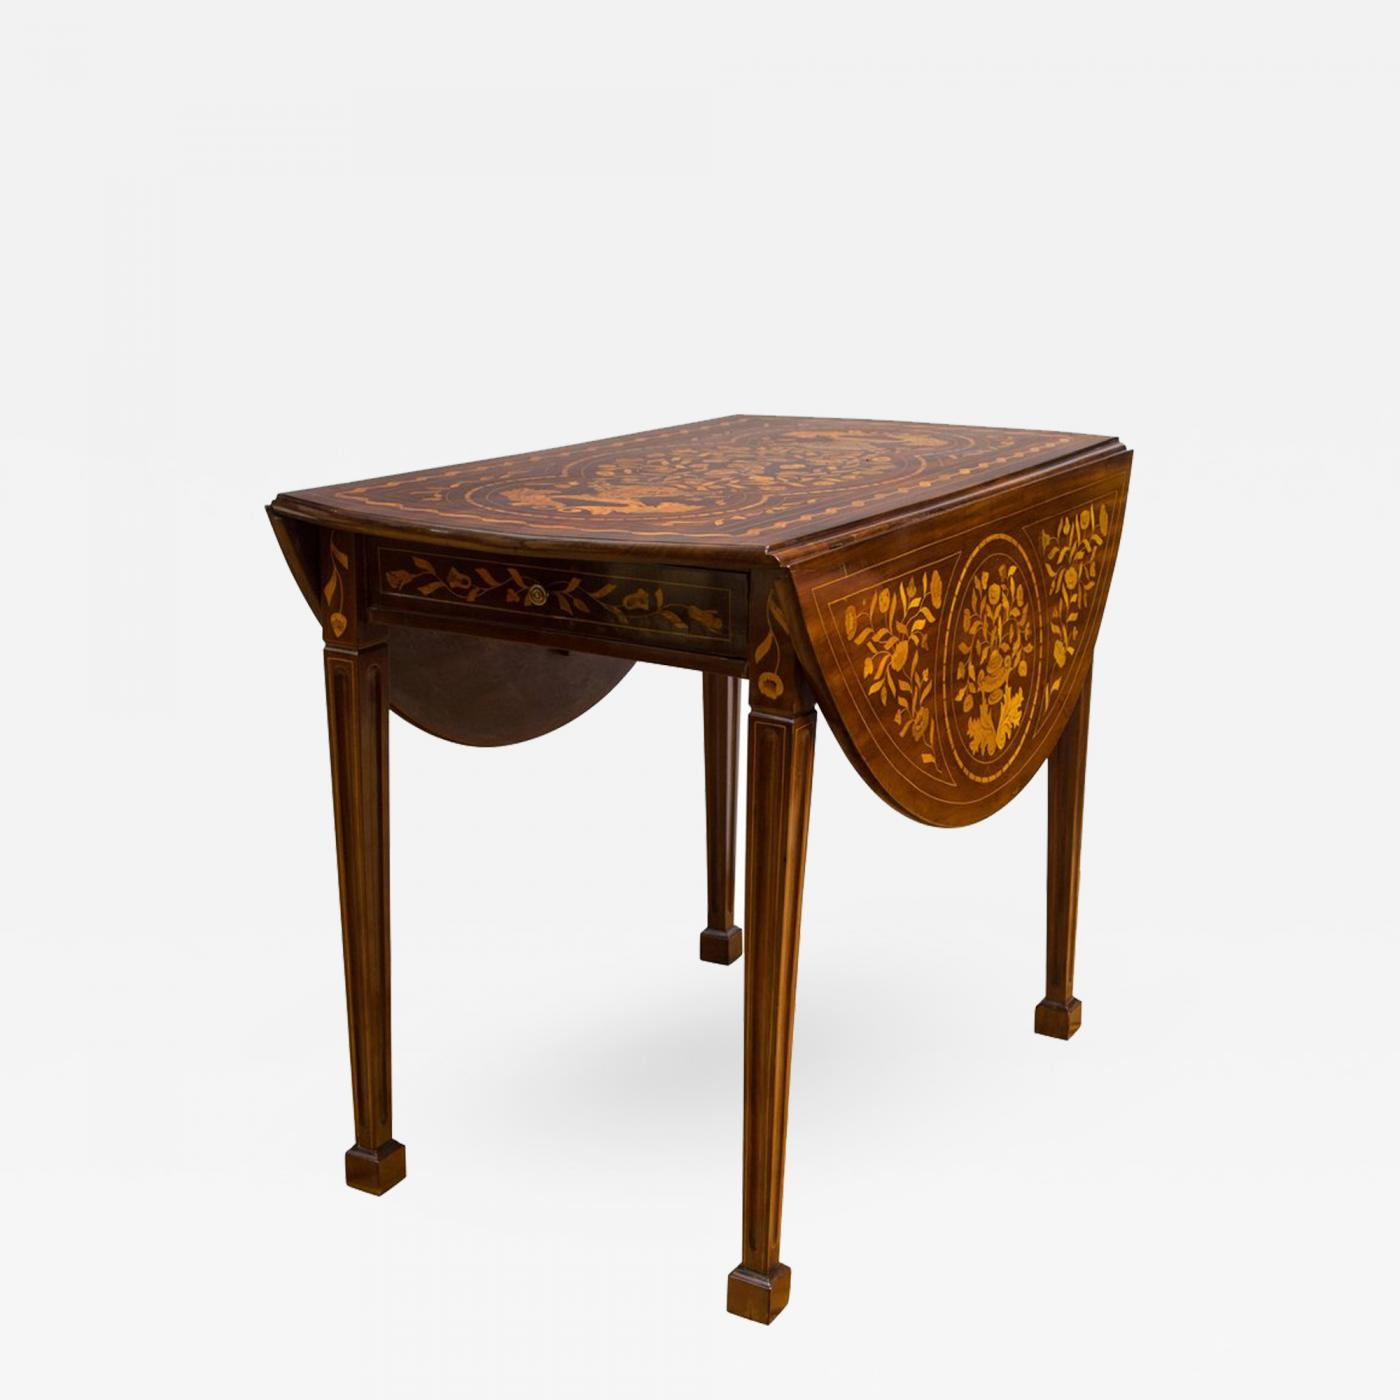 Listings / Furniture / Tables / Dining Tables · Late 18th Century Dutch  Marquetry Inlaid Walnut Drop Leaf Table